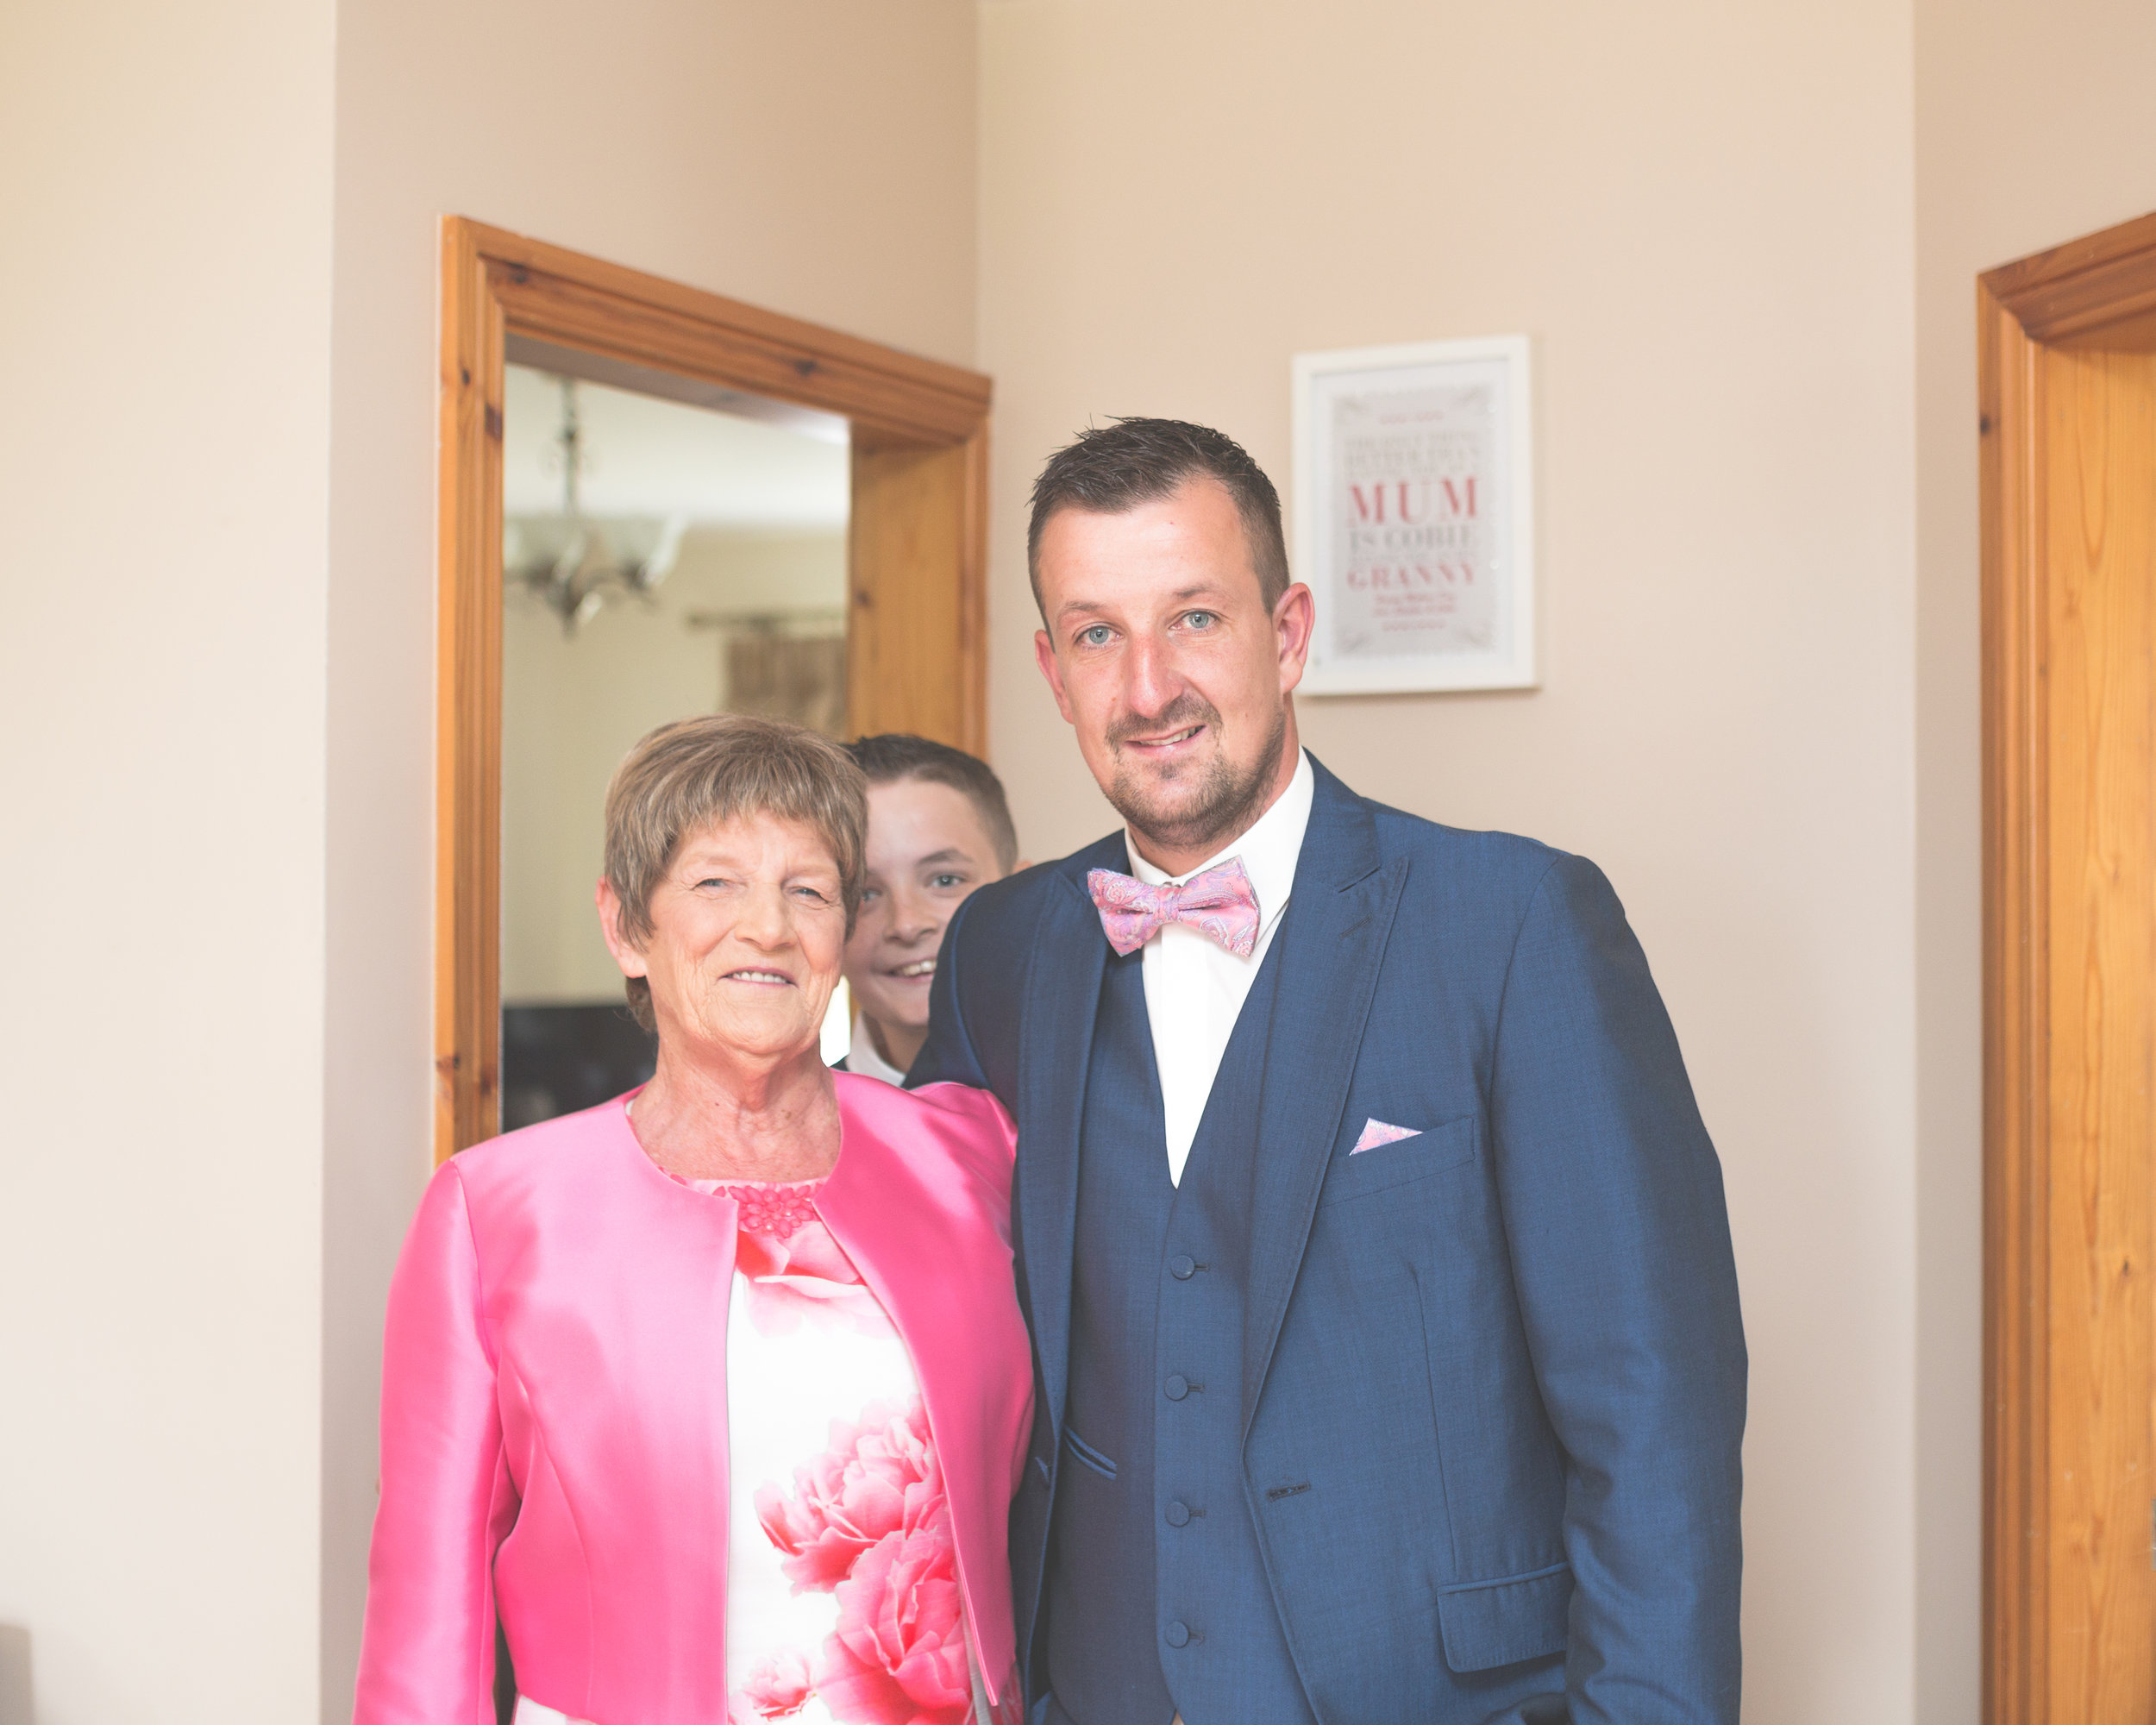 Antoinette & Stephen - Groom & Groomsmen | Brian McEwan Photography | Wedding Photographer Northern Ireland 41.jpg